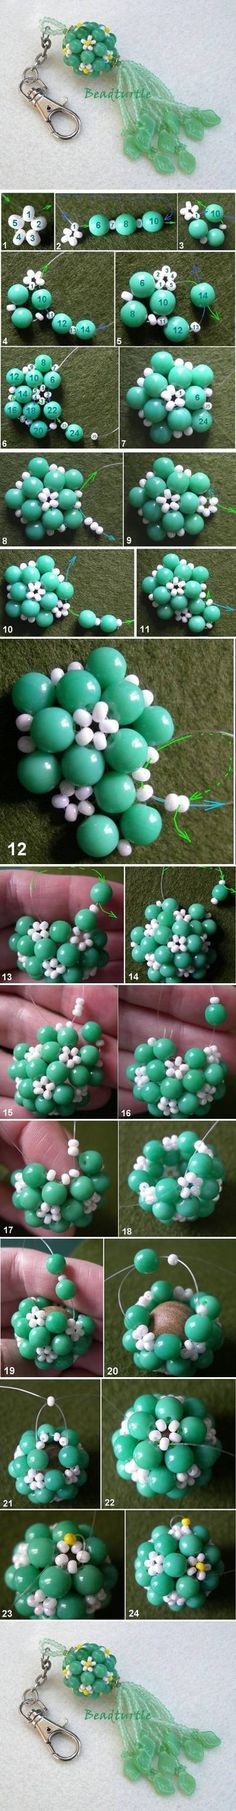 DIY Key Chain Beads Charm